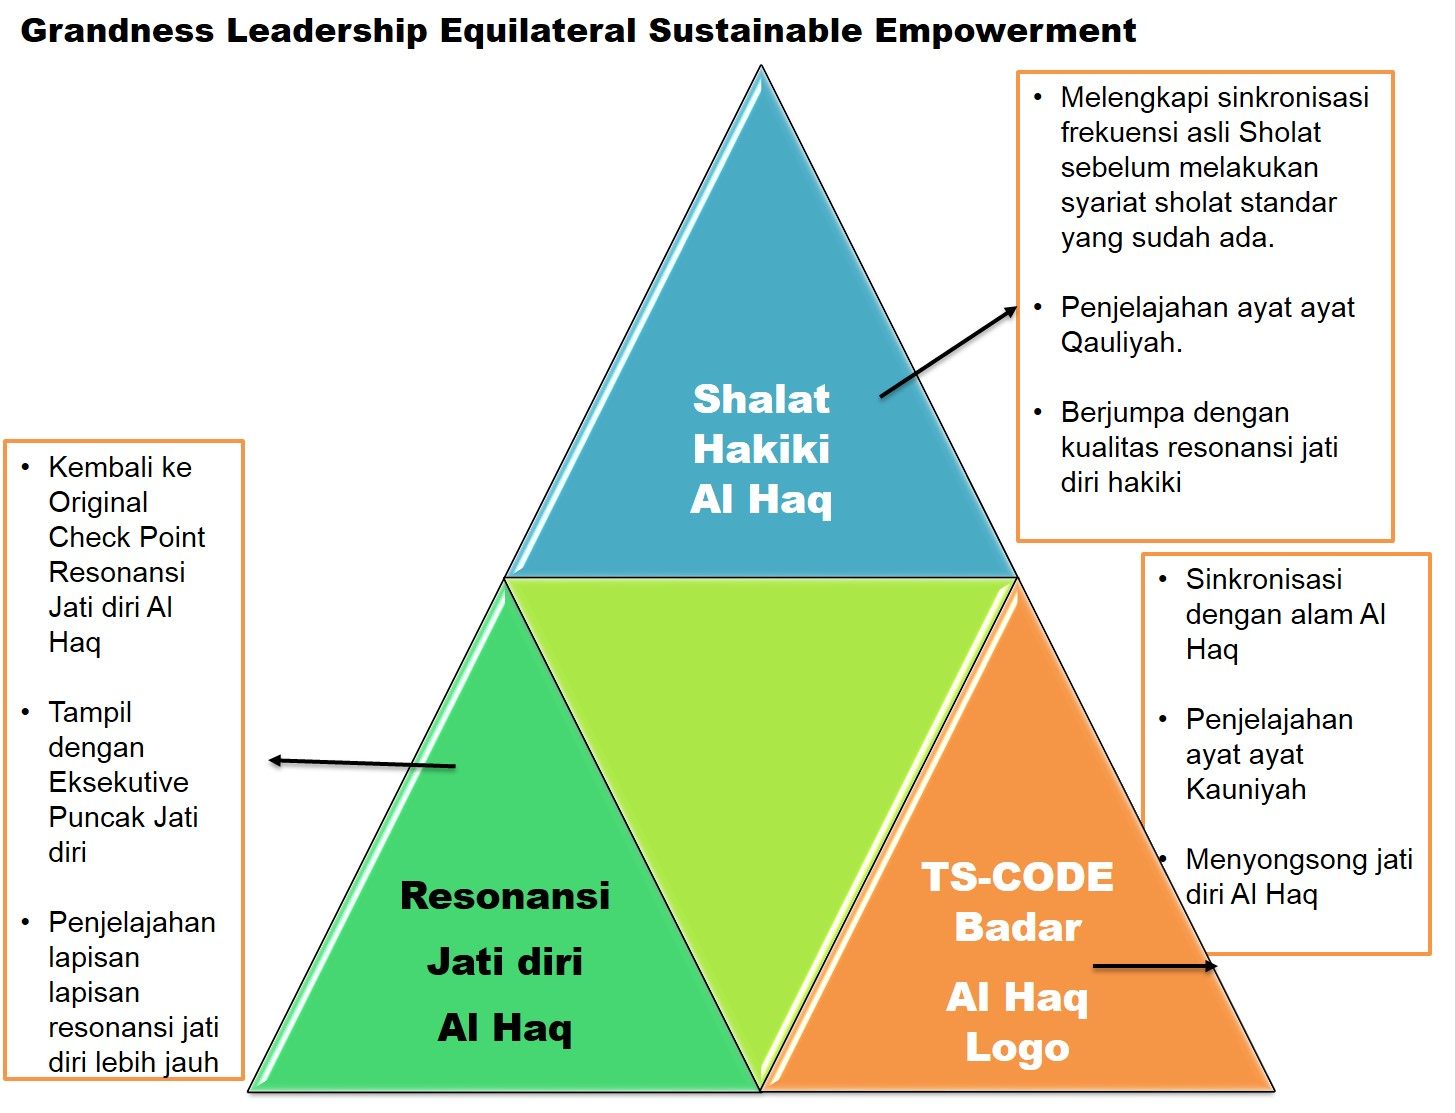 EquilateralEmpowerment